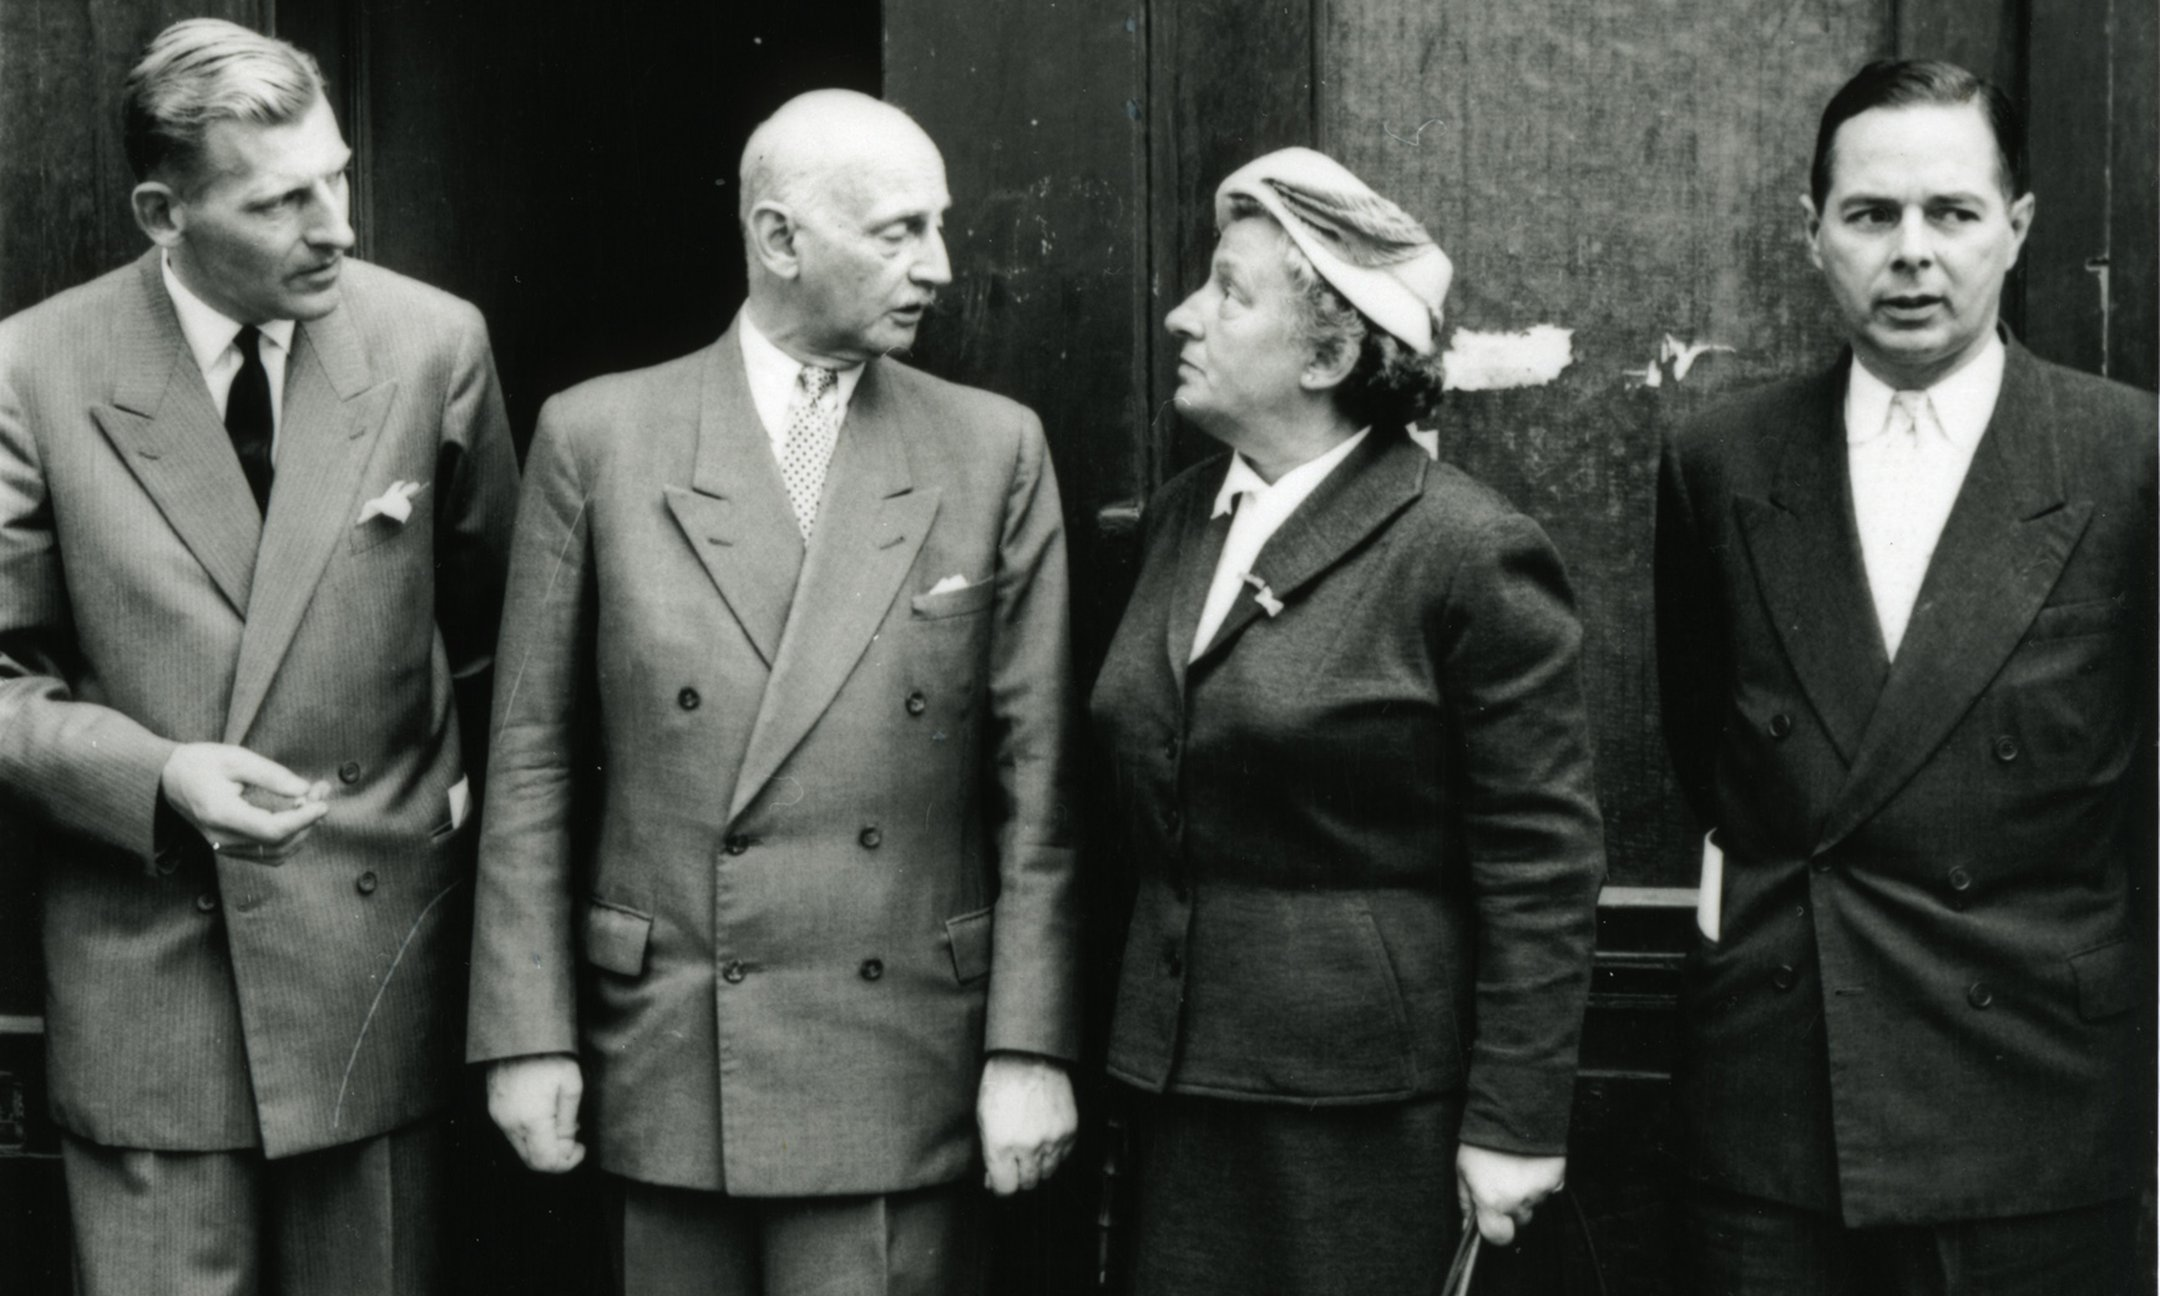 Otto Frank with three members of the first board of the Anne Frank Stichting in 1957. From left to right: Floris Bakels, Otto Frank, Truus Wijsmuller, and Herman Heldring